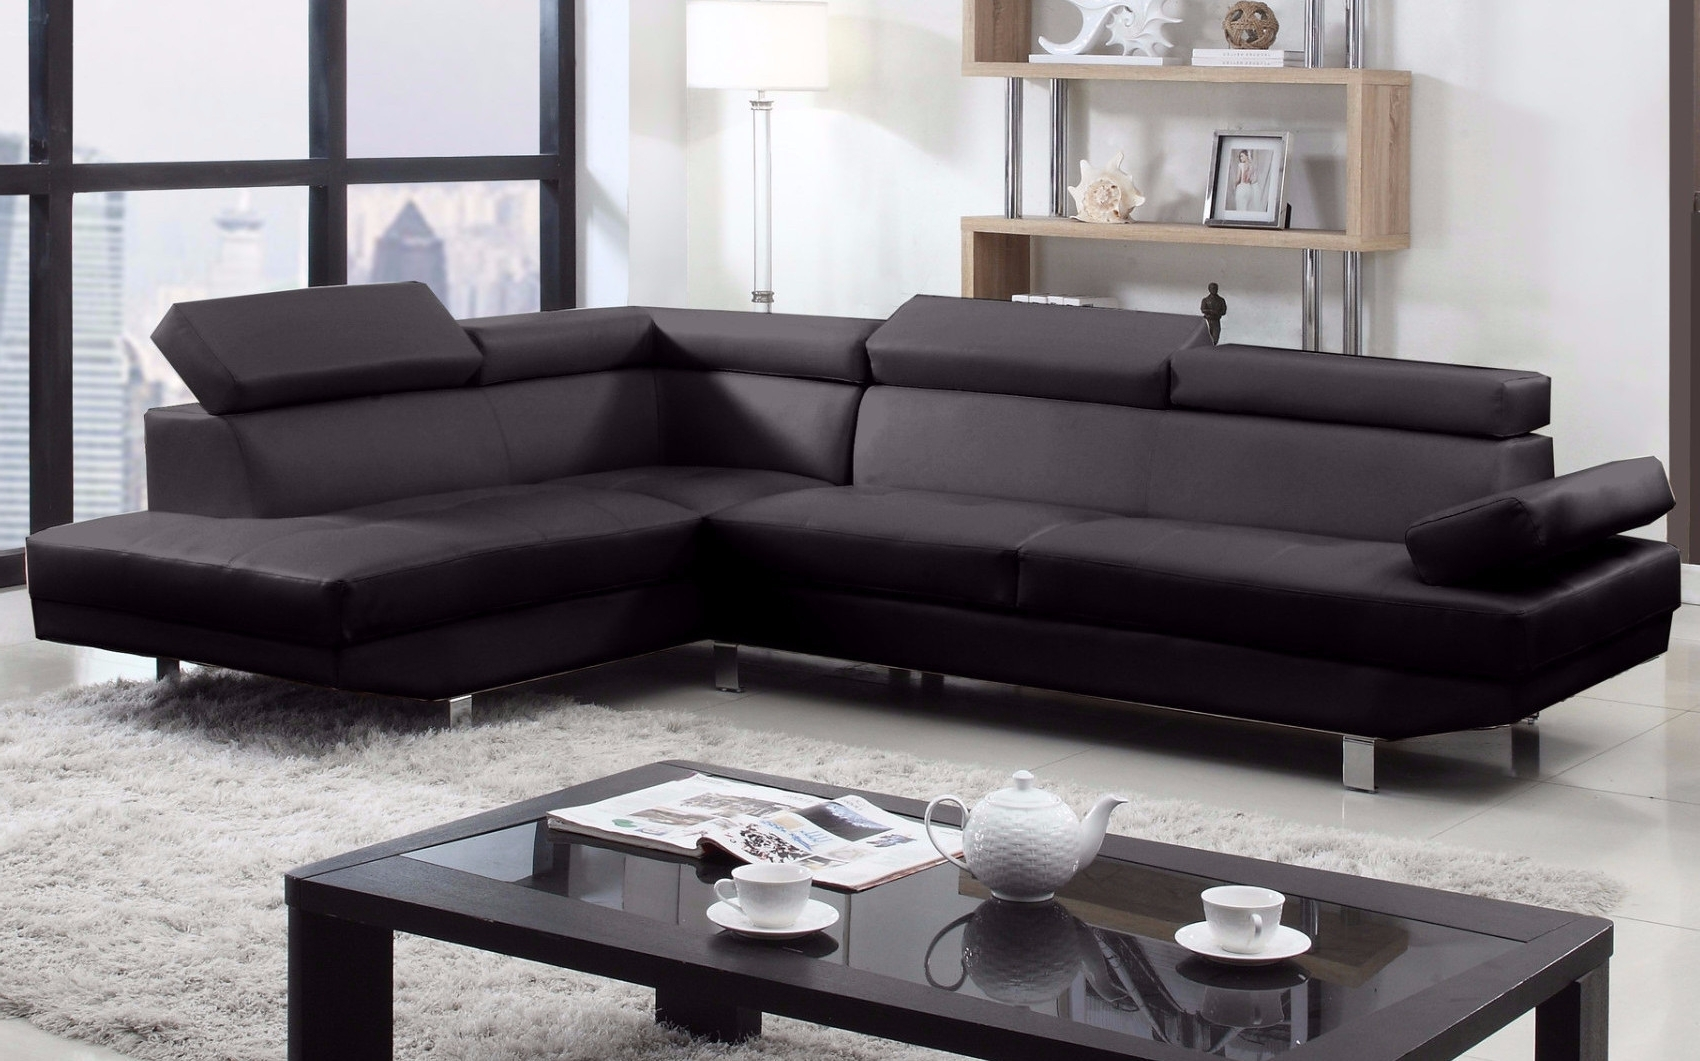 2 Piece Modern Bonded Leather Right Facing Chaise Sectional Sofa With Regard To Trendy 2 Seat Sectional Sofas (View 1 of 15)